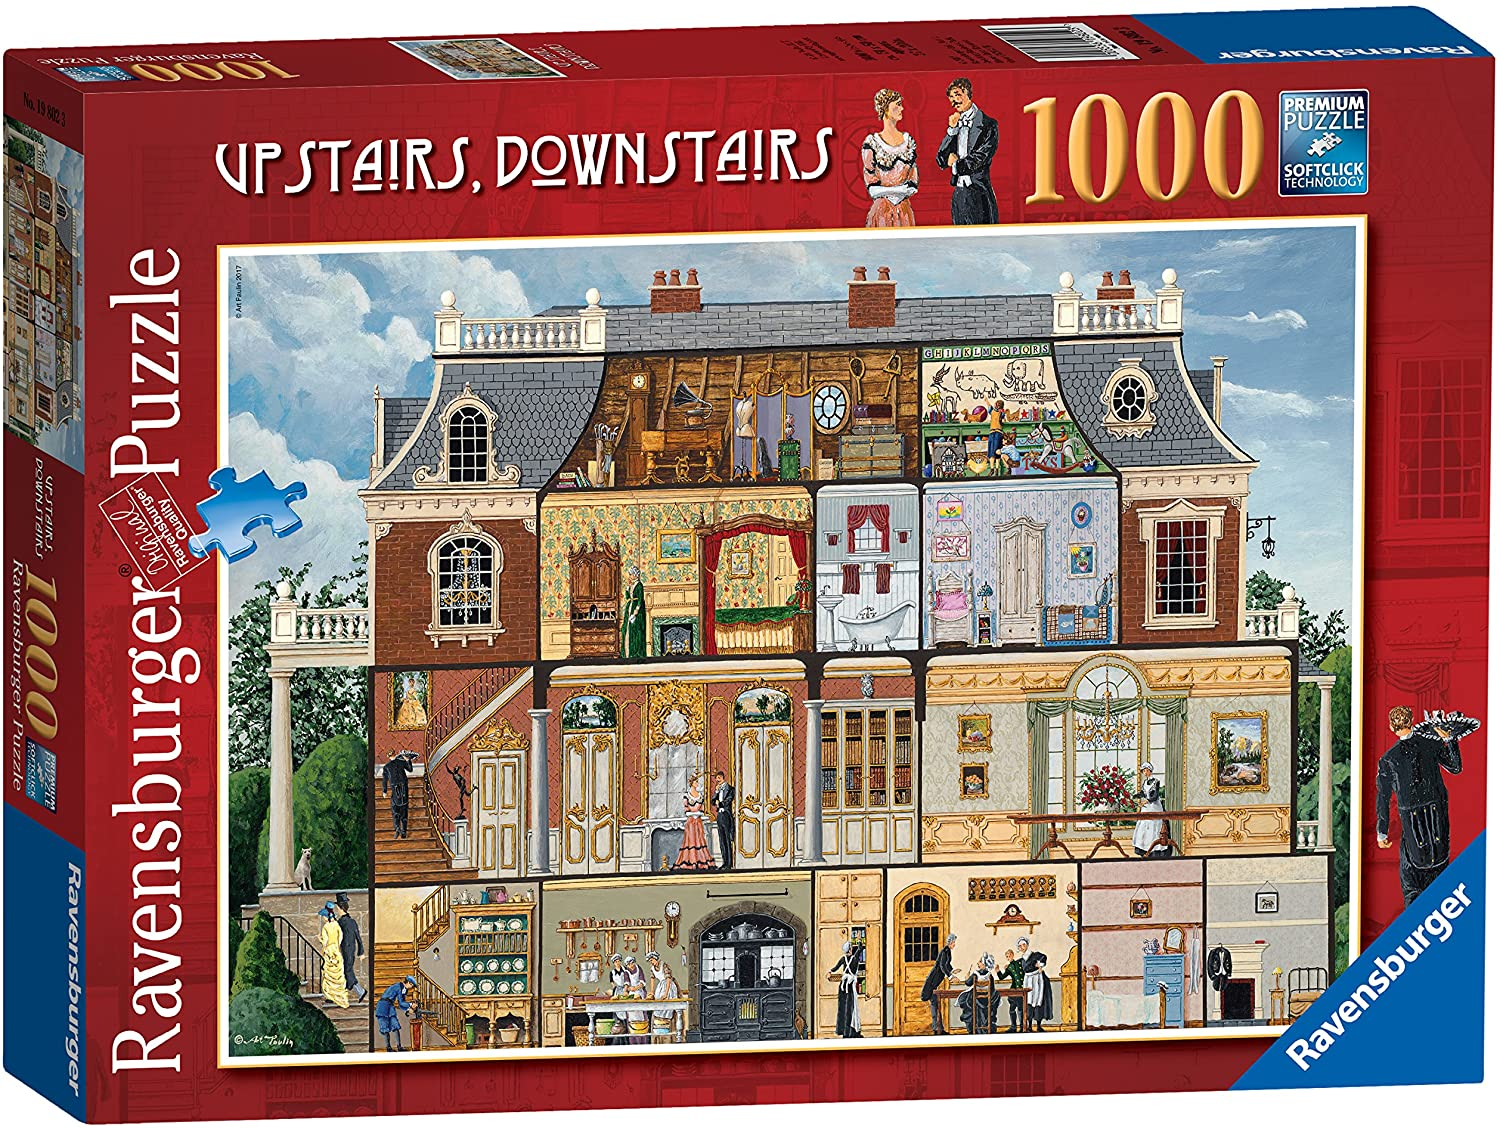 UPSTAIRS DOWNSTAIRS 1000PC JI